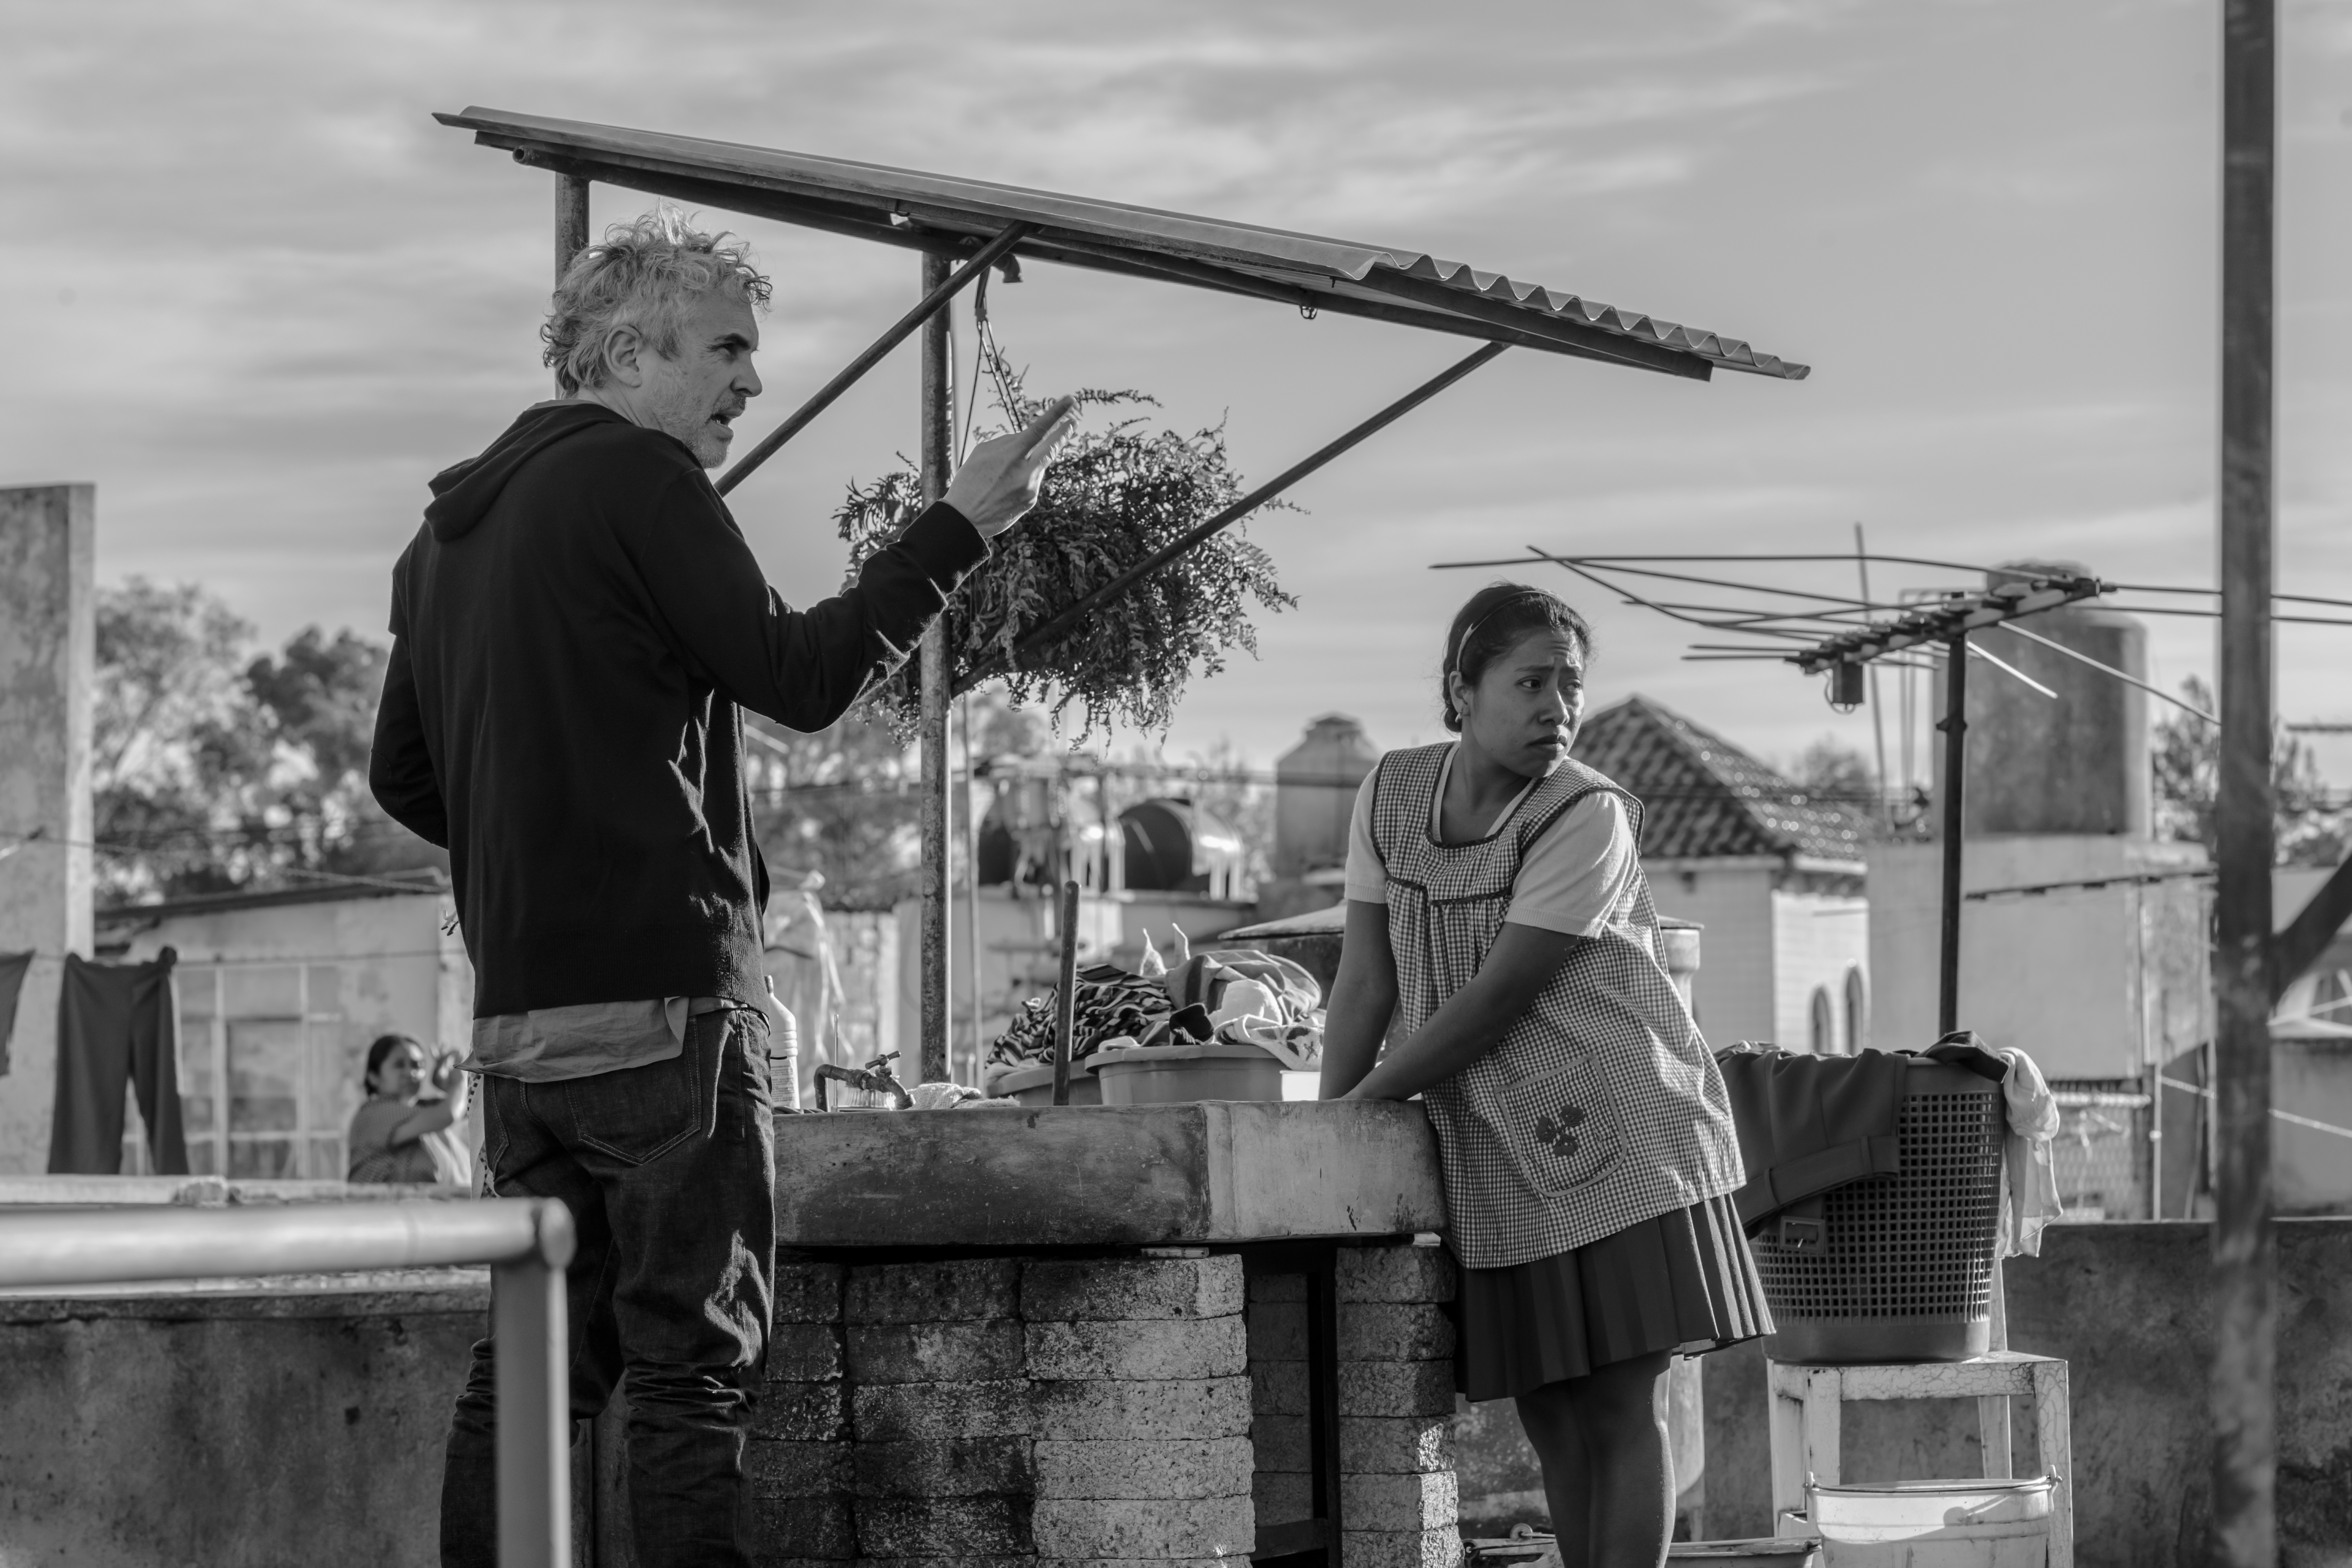 Alfonso Cuaron's Highly Anticipated Mexico-Set Movie 'Roma' Heads to New York